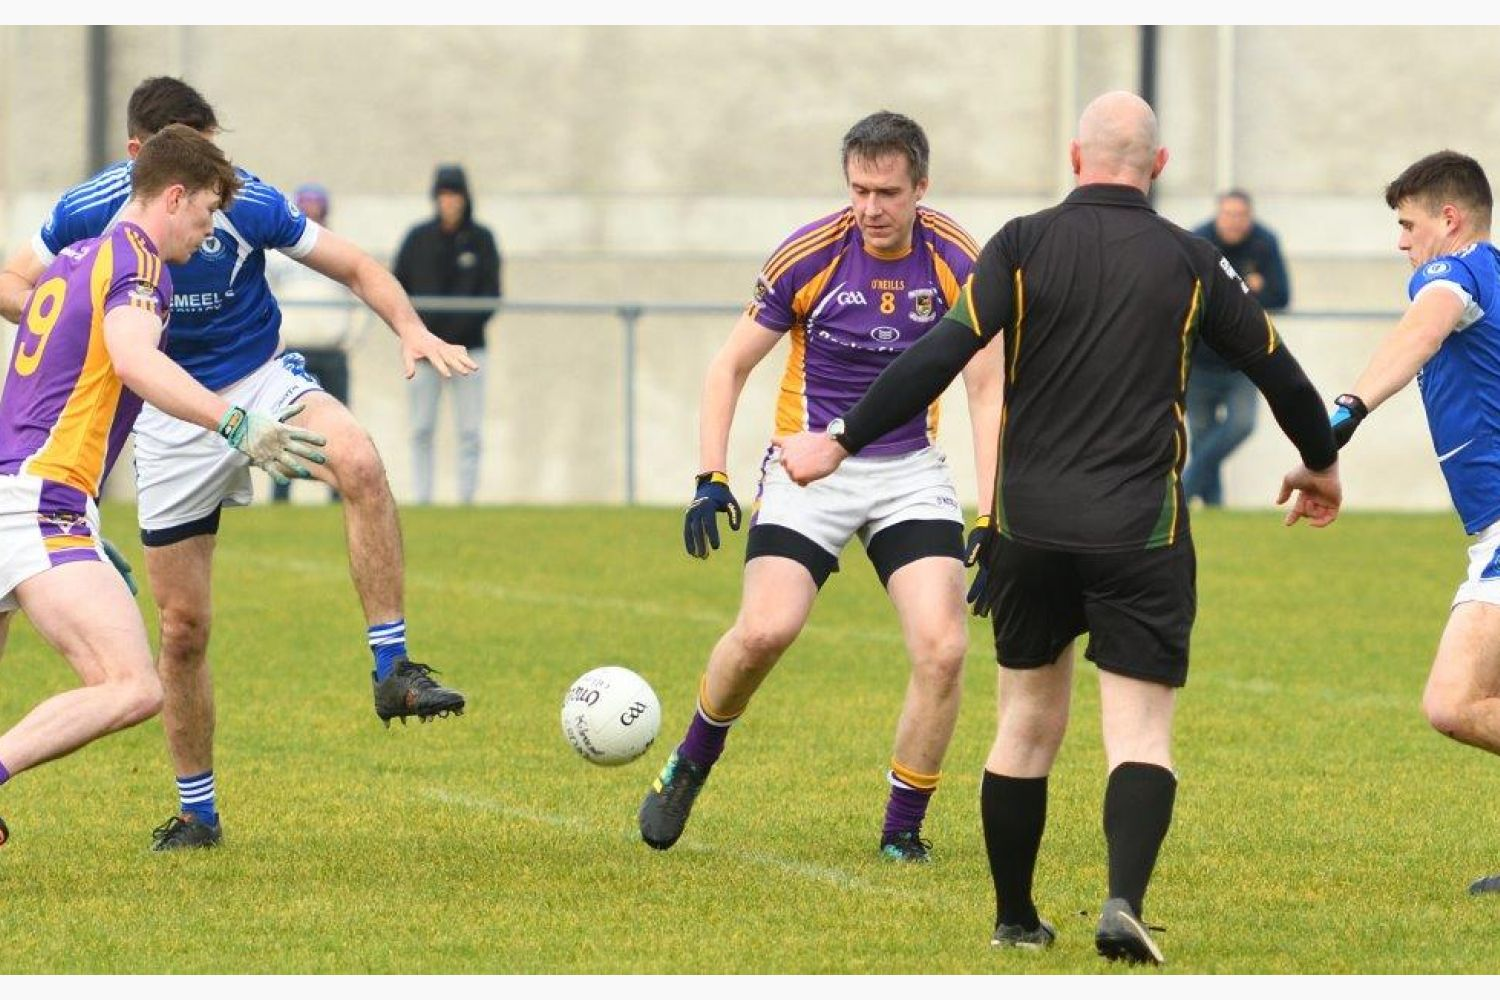 Kilmacud Crokes Junior 1 Championship County Final Win Over Skerries